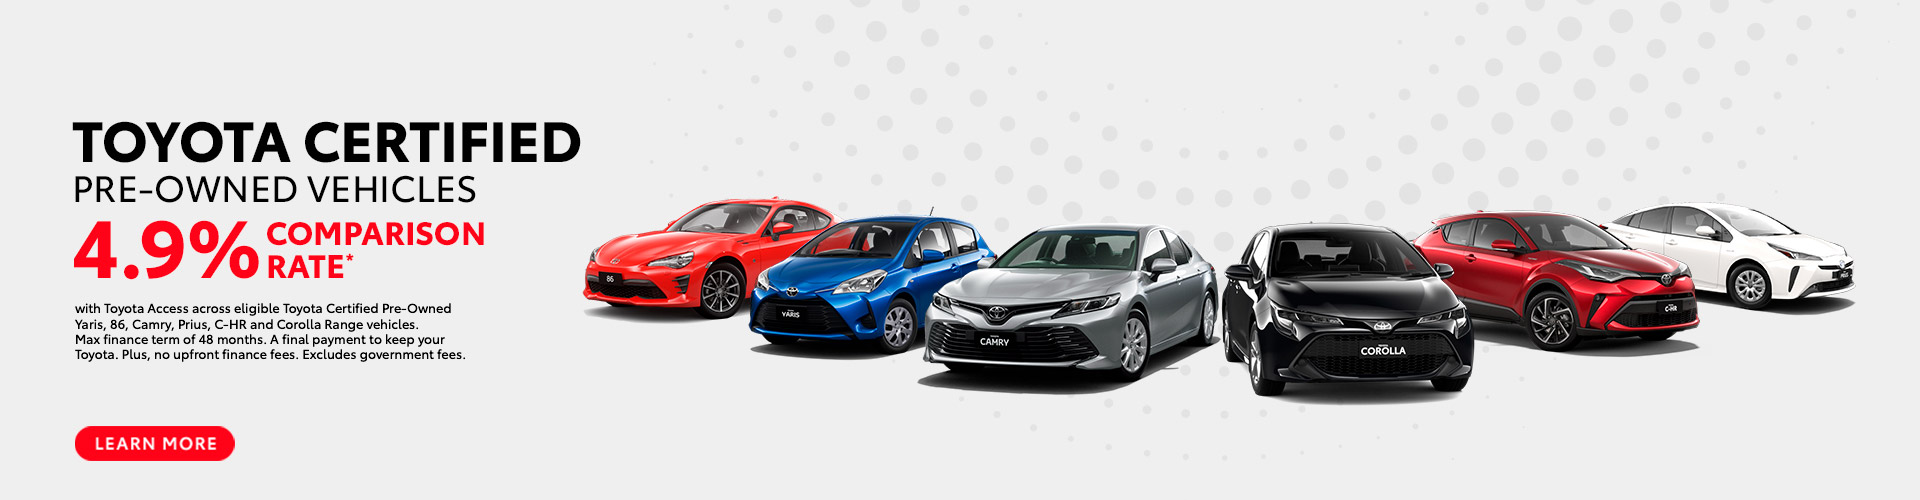 Toyota Certified Pre-Owned Vehicles Offer